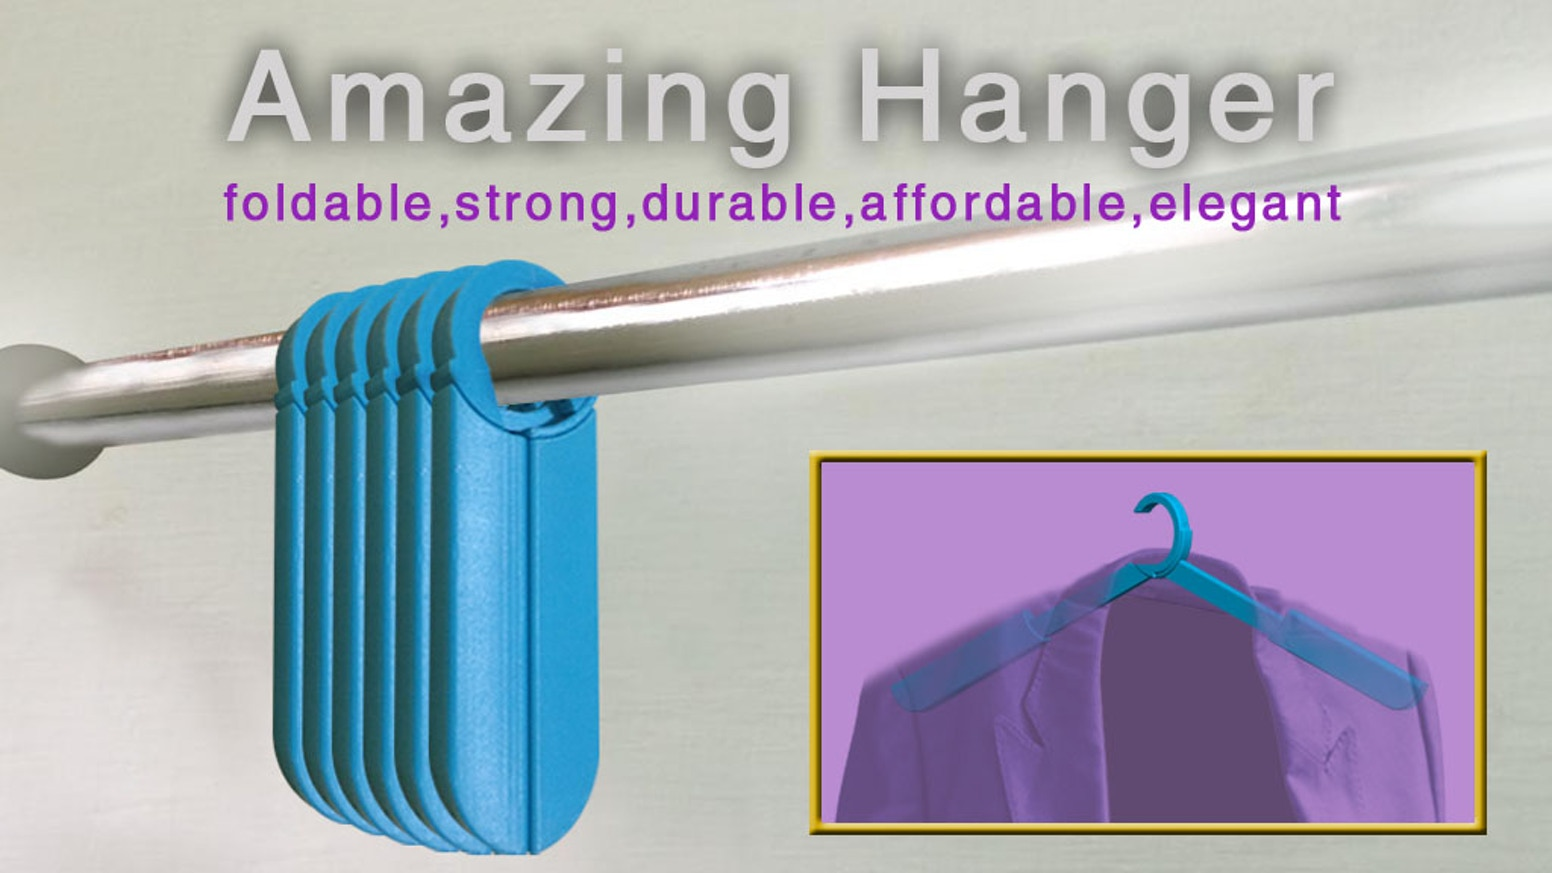 Unconventional hangers everyone loves to carry on the go! 9fe6e72442ac1